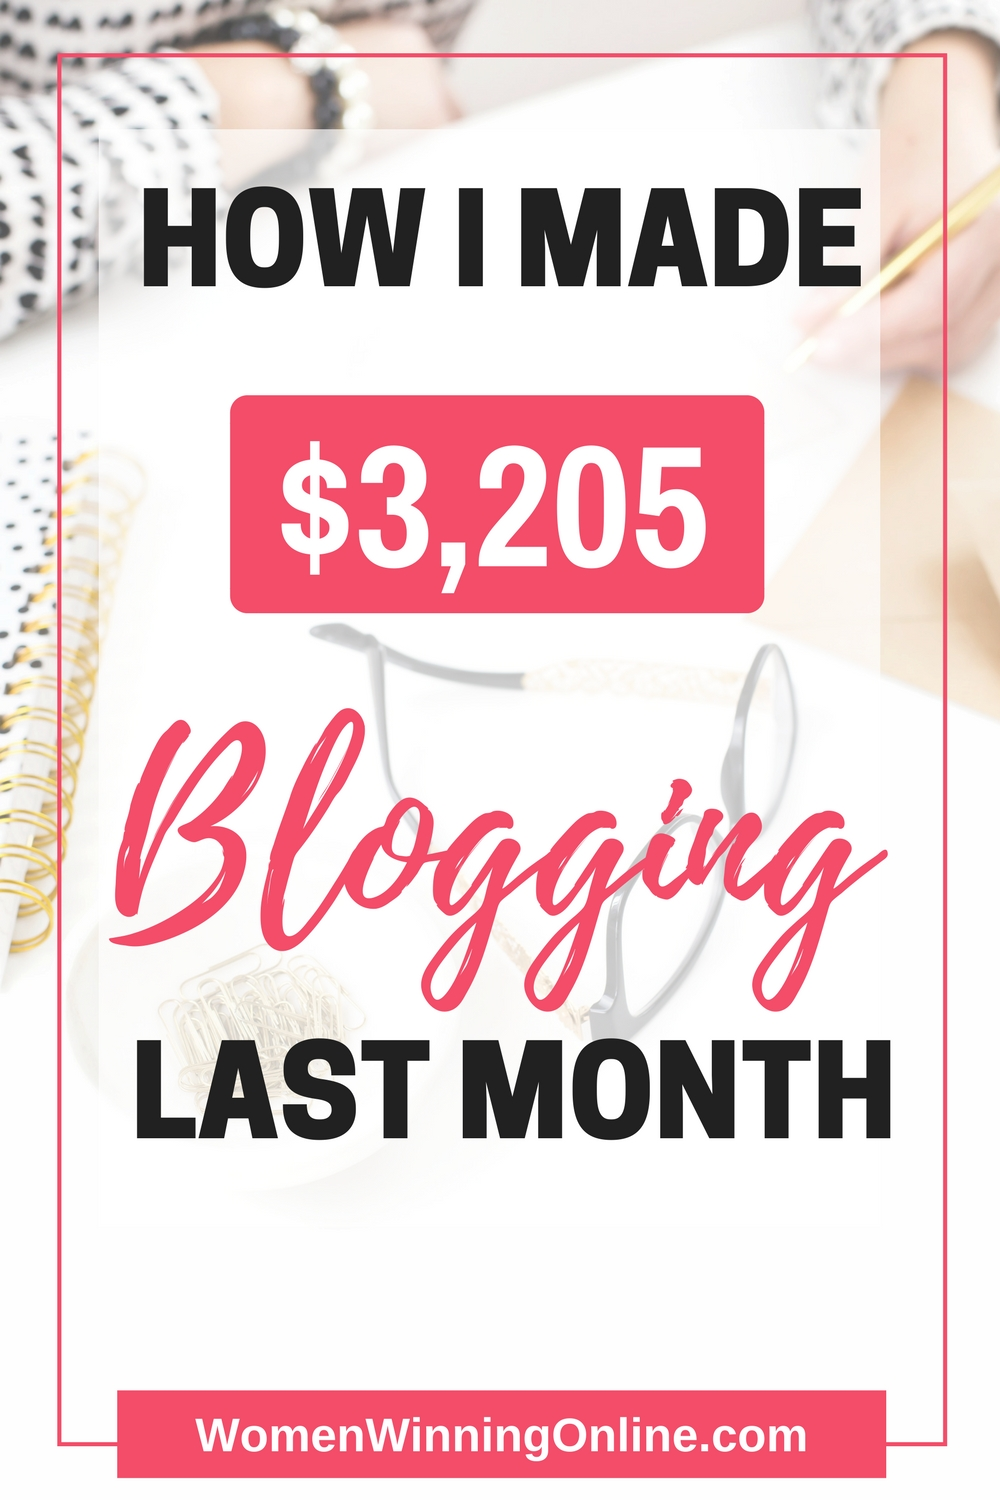 Curious how I made $3,205 blogging? Click through to find out in this month's blog income report!